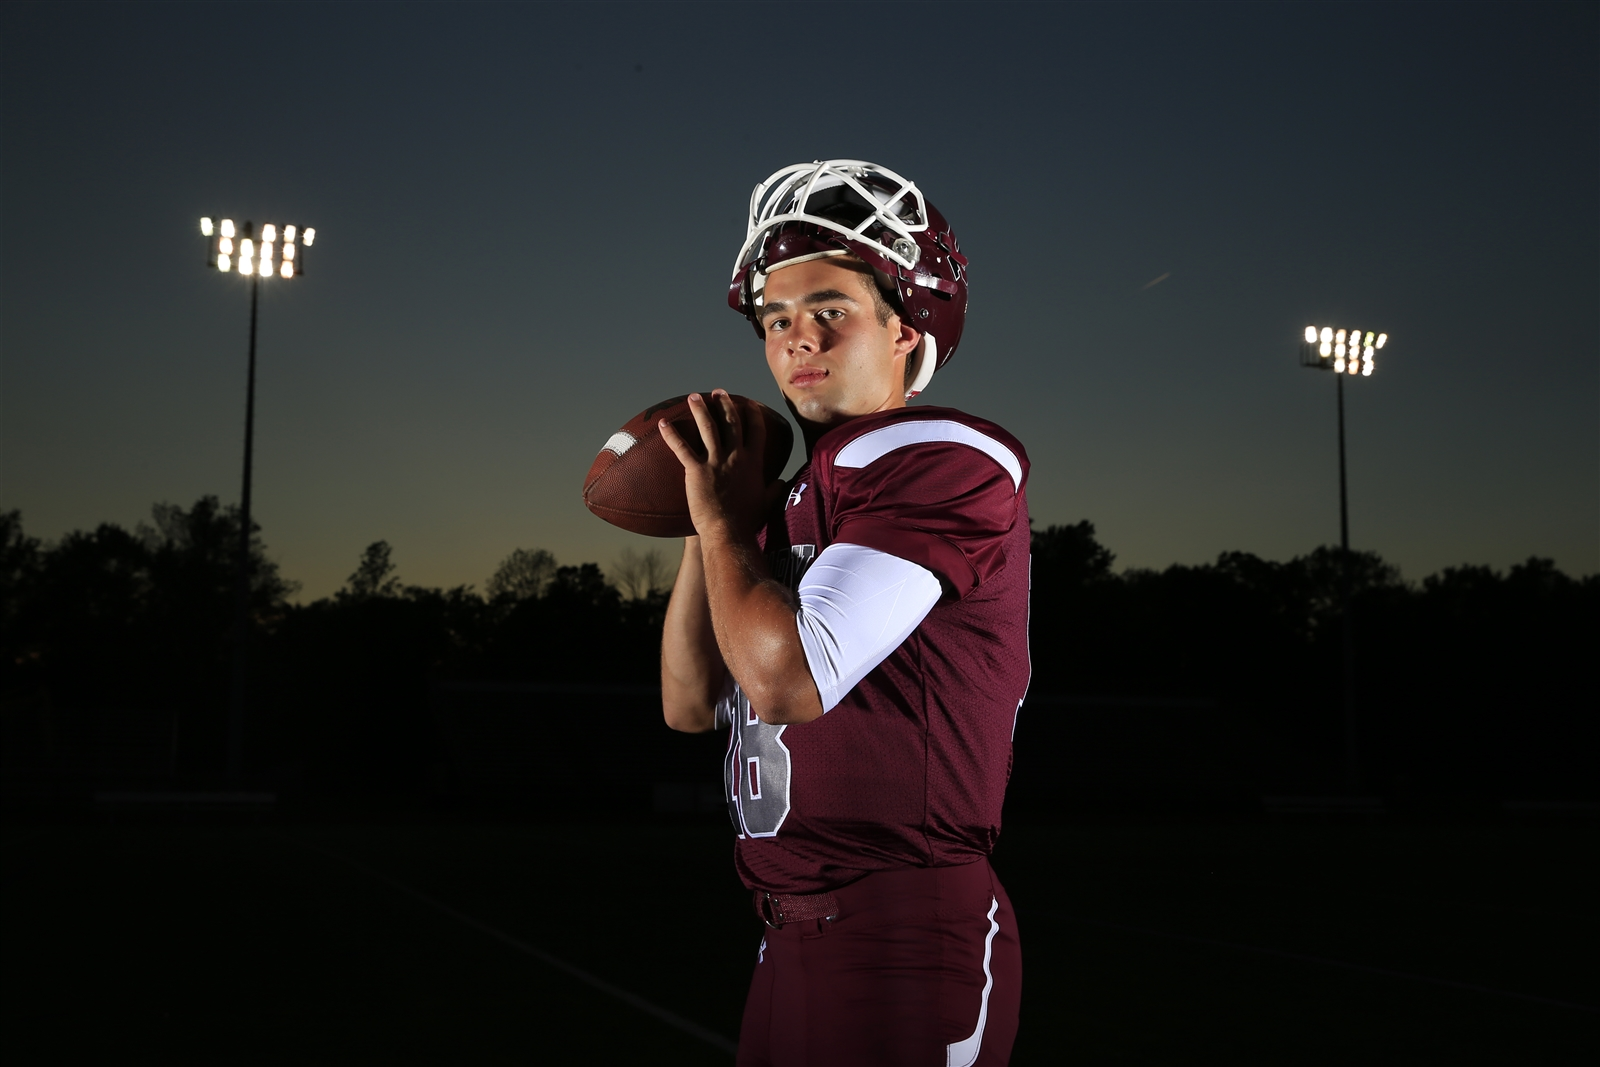 Dillon Janca, Orchard Park. The 5-foot-11, 185-pound senior has passed for 4,533 yards and 48 touchdowns, within reach of former Williamsville South quarterback Joe Licata's Western New York record of 6,671 career yards.